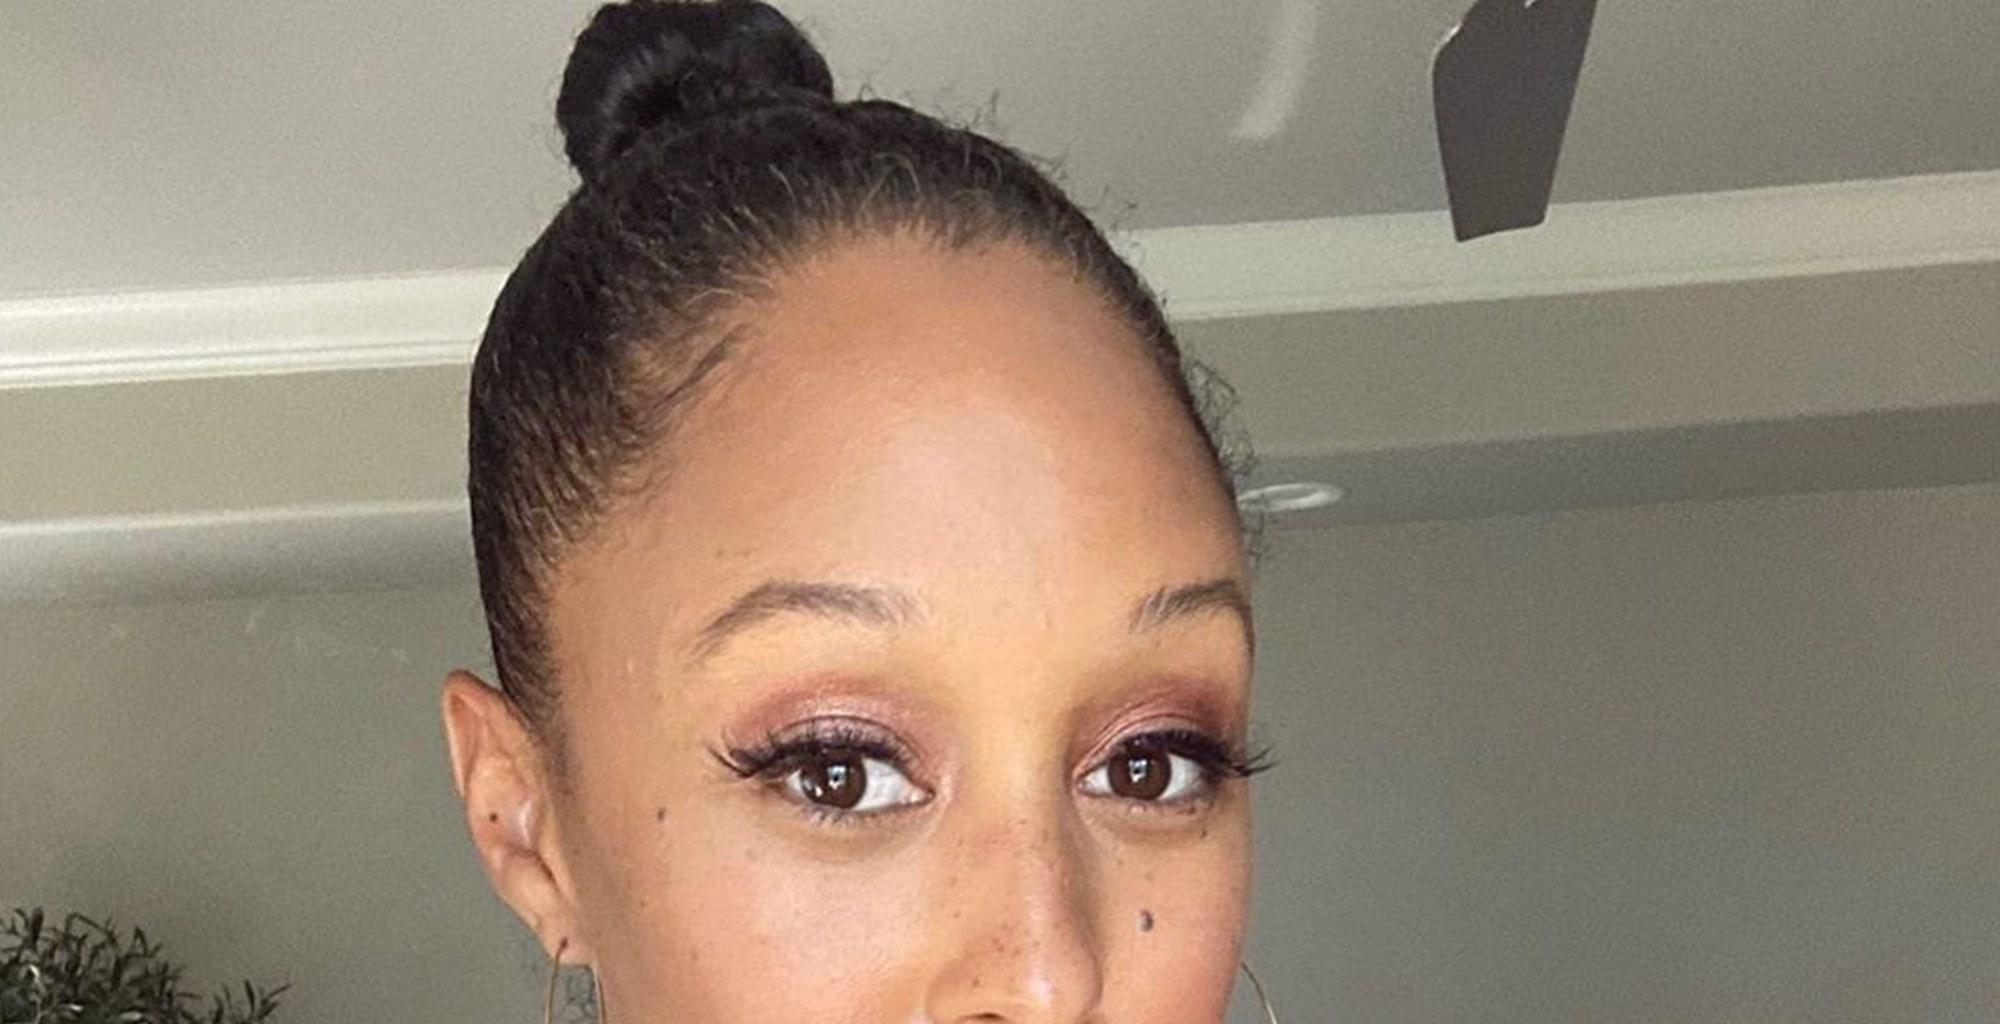 Tamera Mowry-Housley Shares Breathtaking Photo While Going Through A Life-Changing Decision